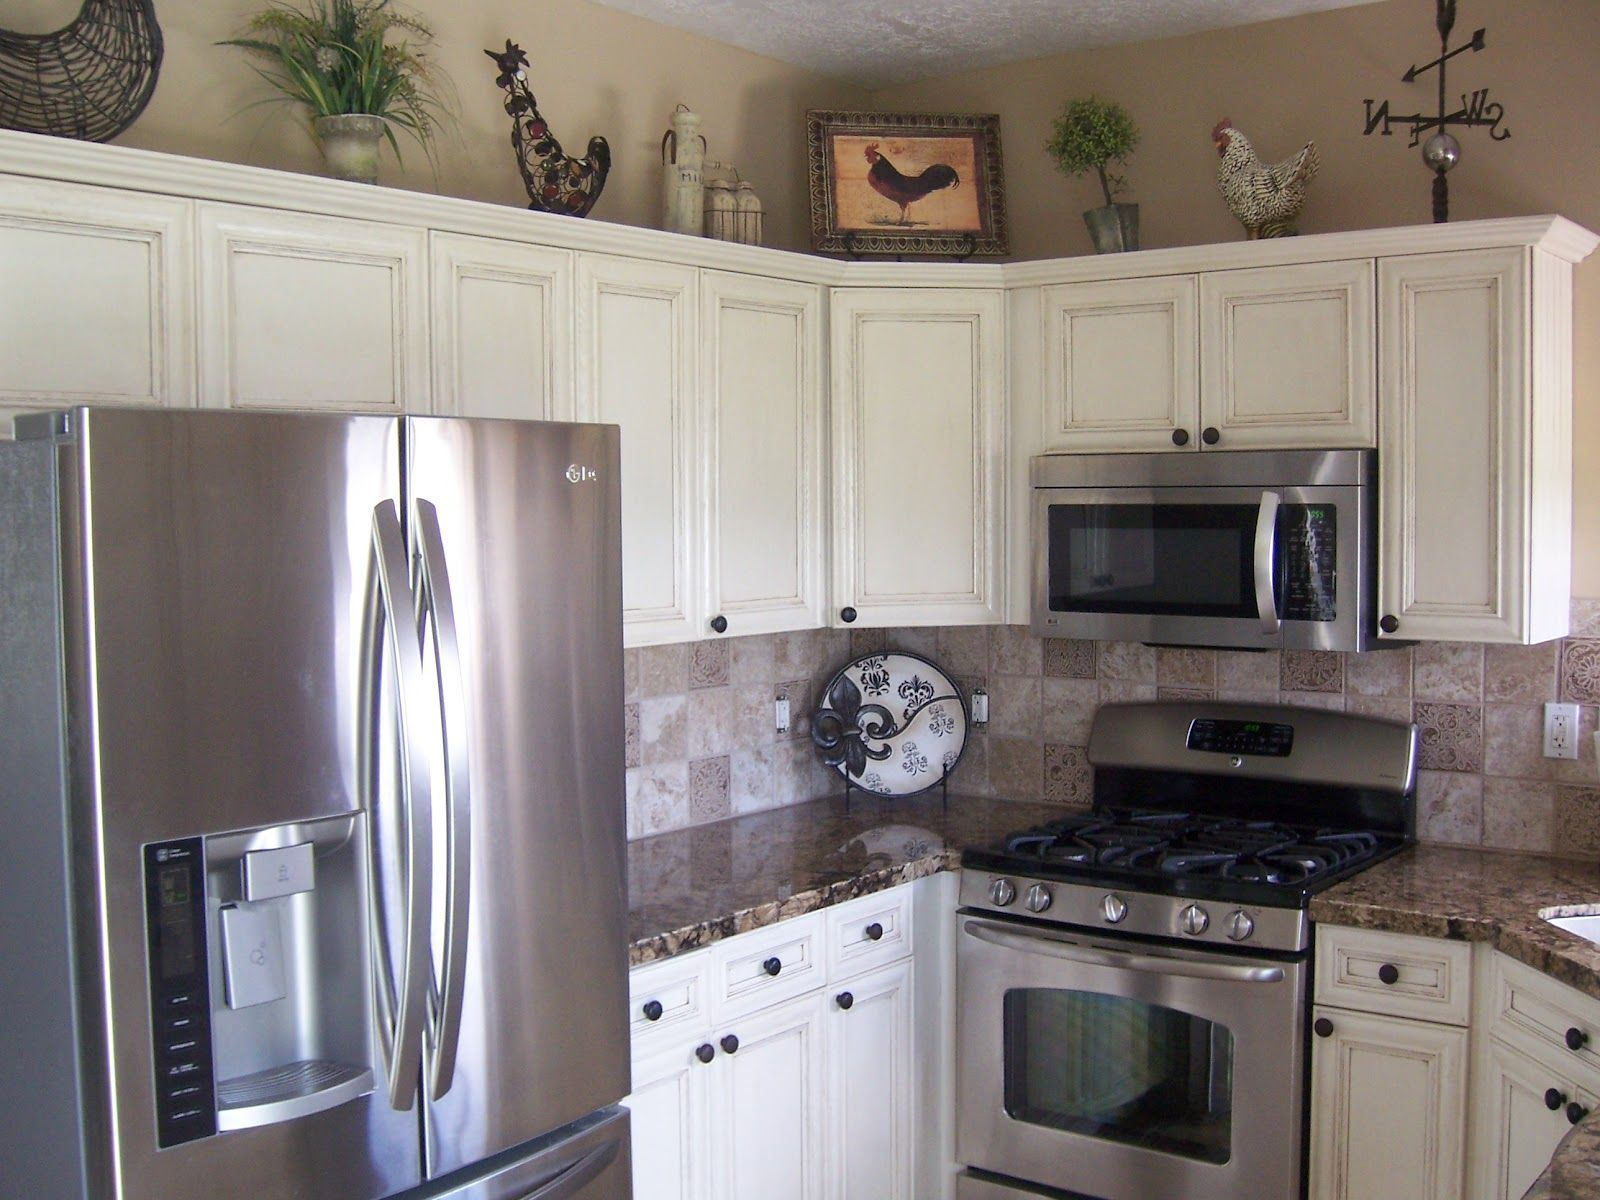 White Kitchen Cabinets Offer The Most Timeless Look And The One You D Least Tire Of Stainless Steel Kitchen Appliances Kitchen Colors Kitchen Cabinet Colors